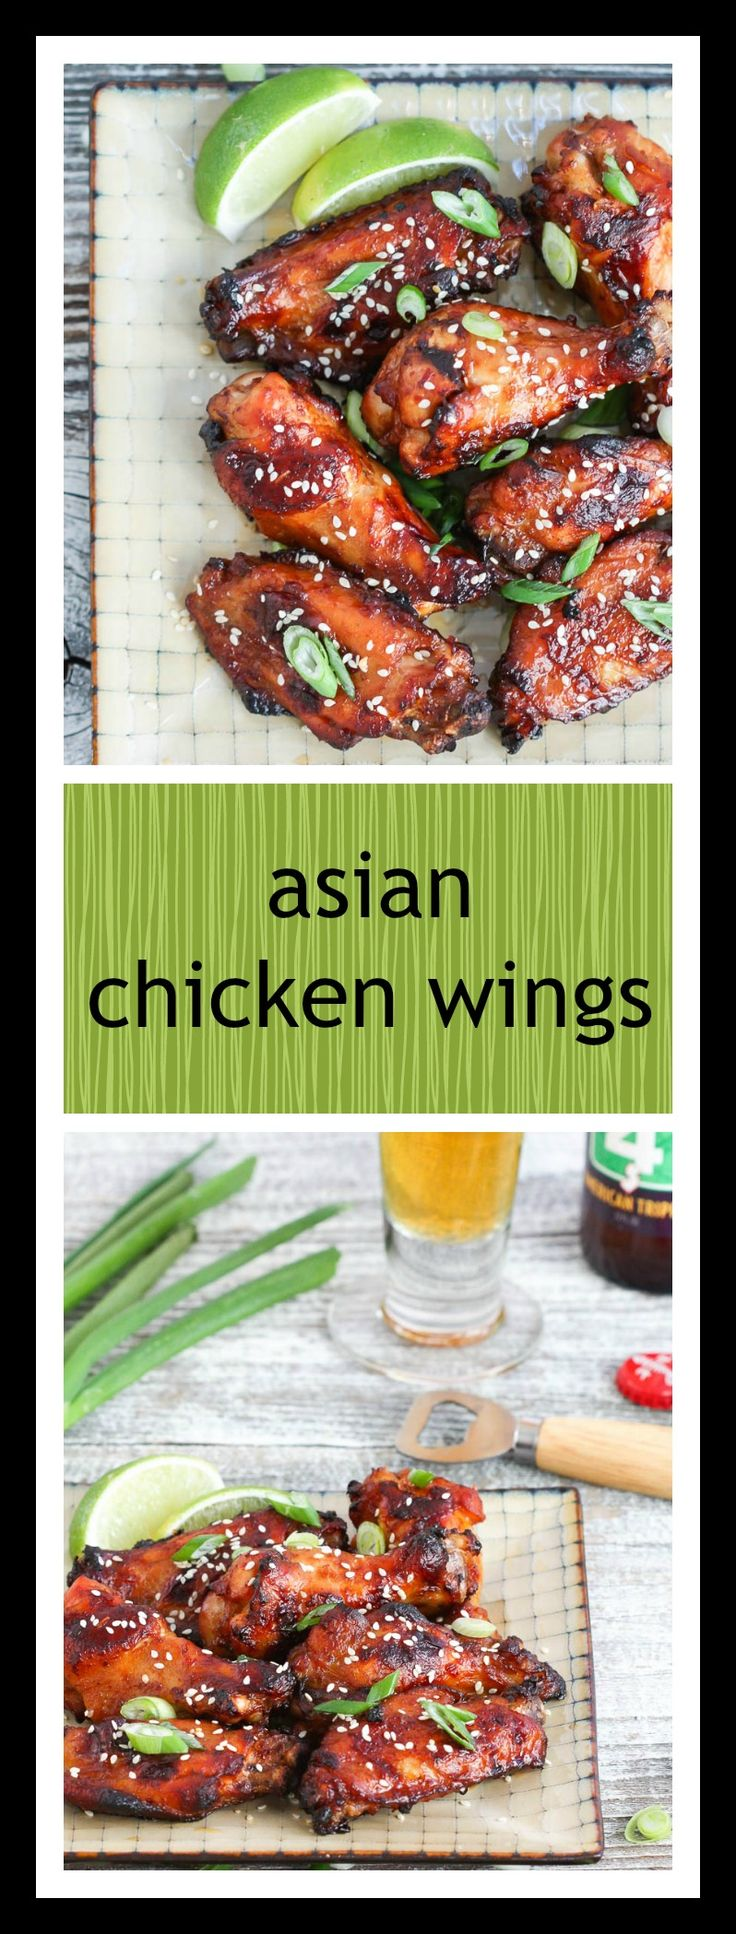 STICKY, SWEET, SPICY AND CRISPY ASIAN CHICKEN WINGS ARE PERFECT PARTY FARE!